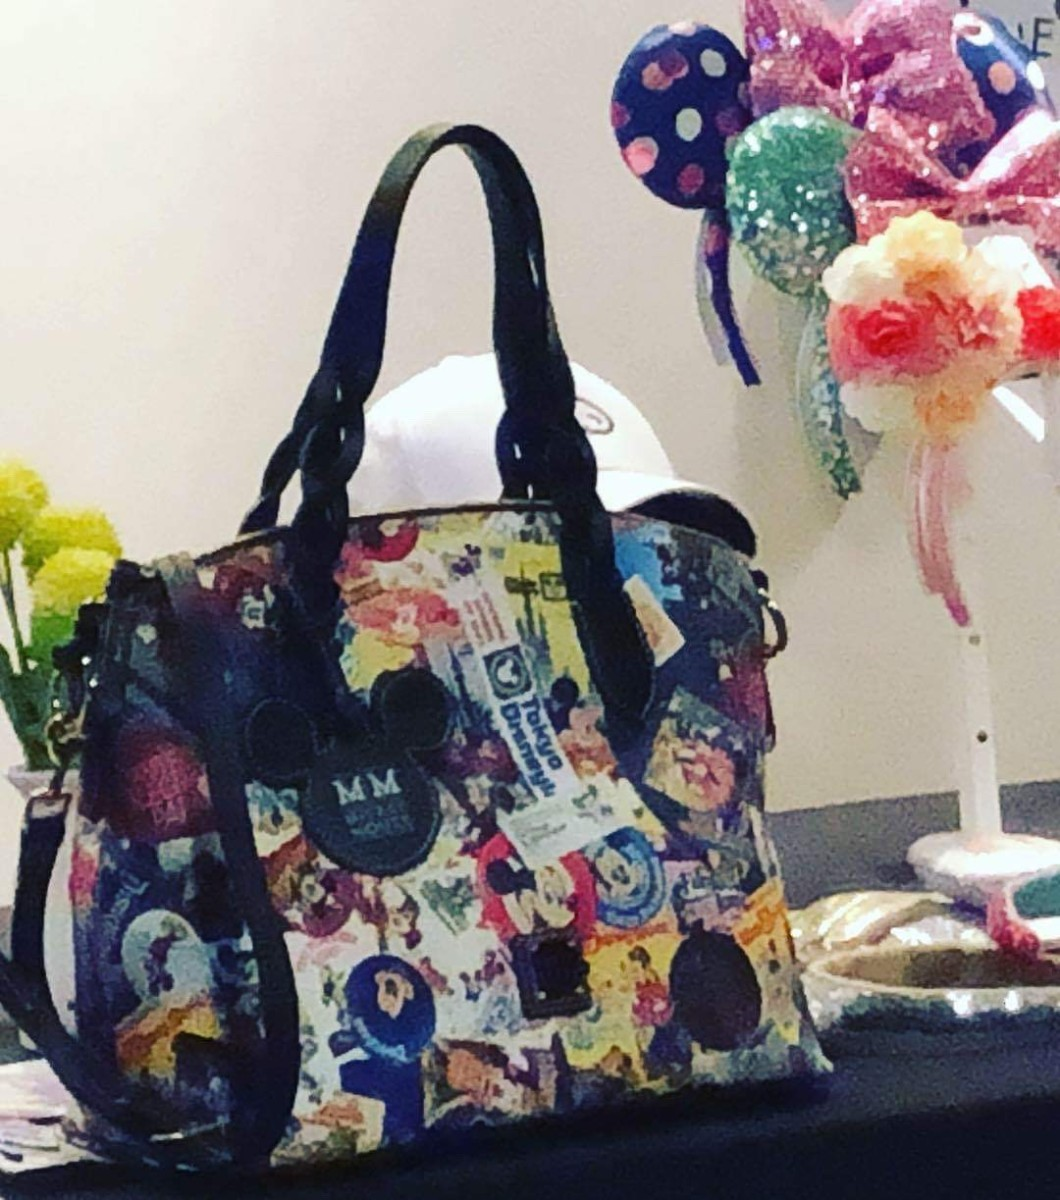 Sneak peek of New Dooney and Bourke Mickey Collage Through The Years Bags #disneystyle 3